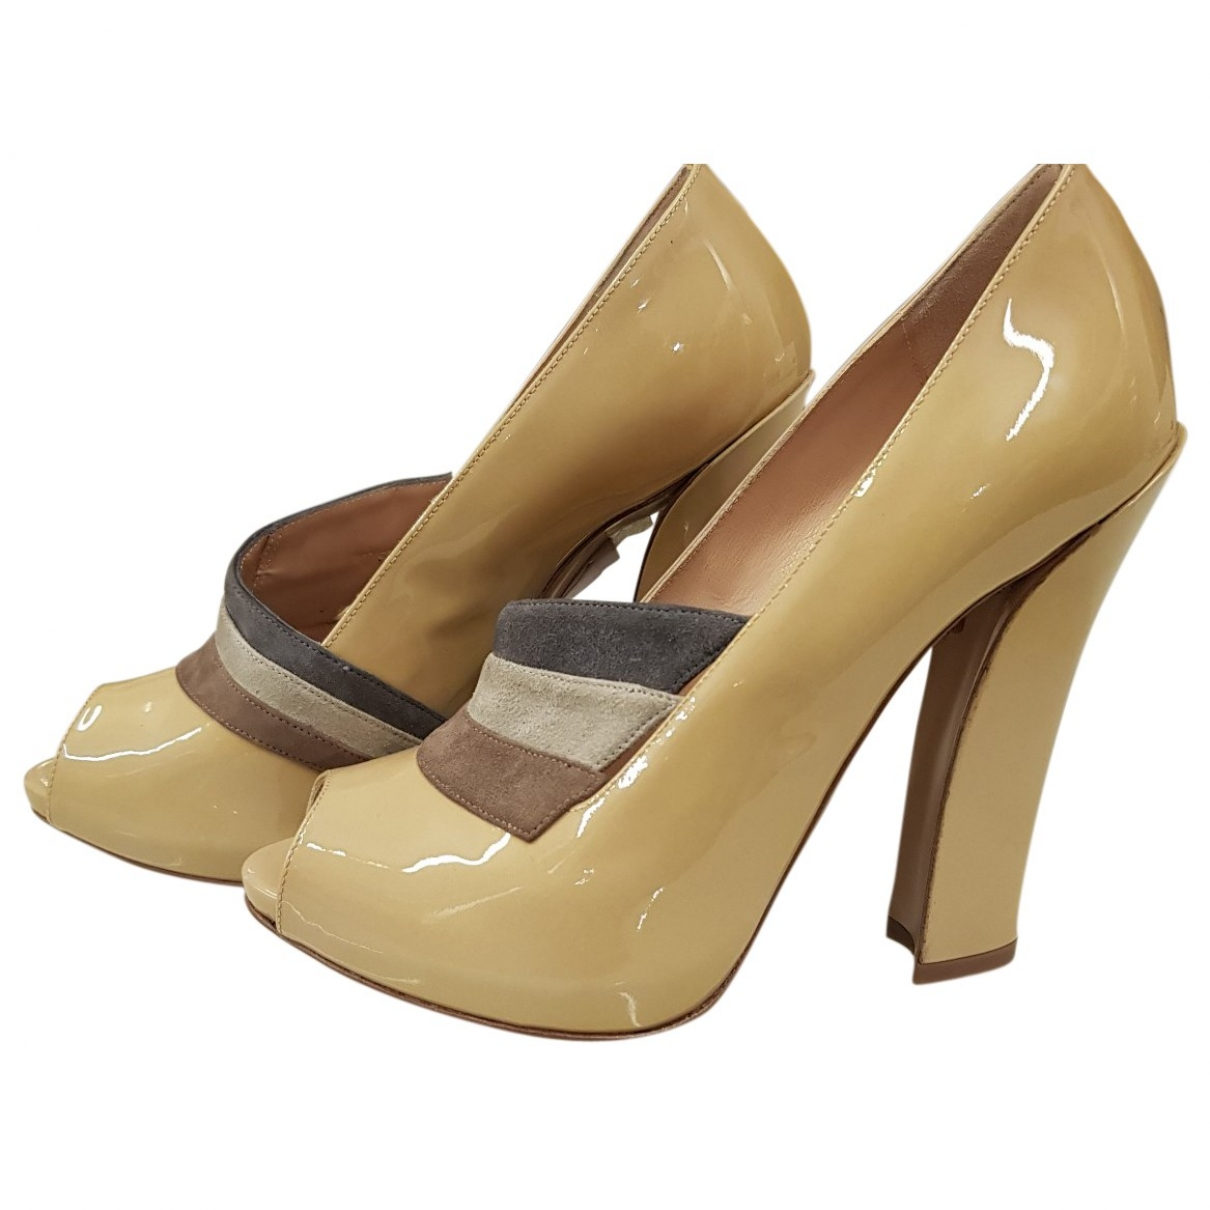 Emporio Armani \N Beige Patent leather Heels for Women 37 EU